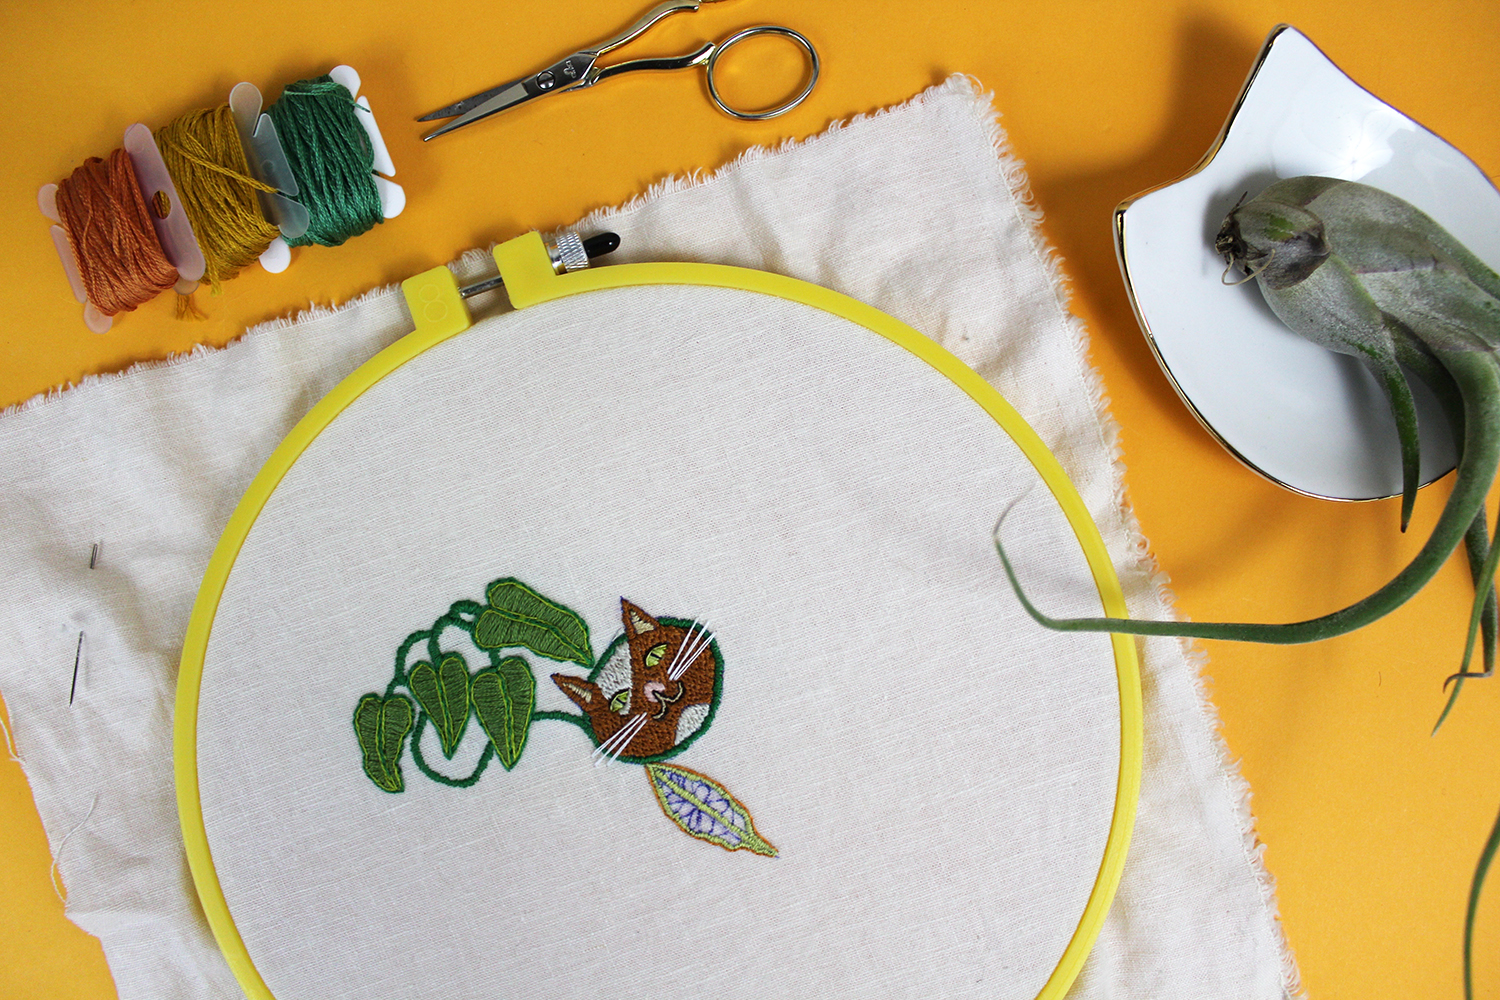 1 Year of Stitches hand embroidery project